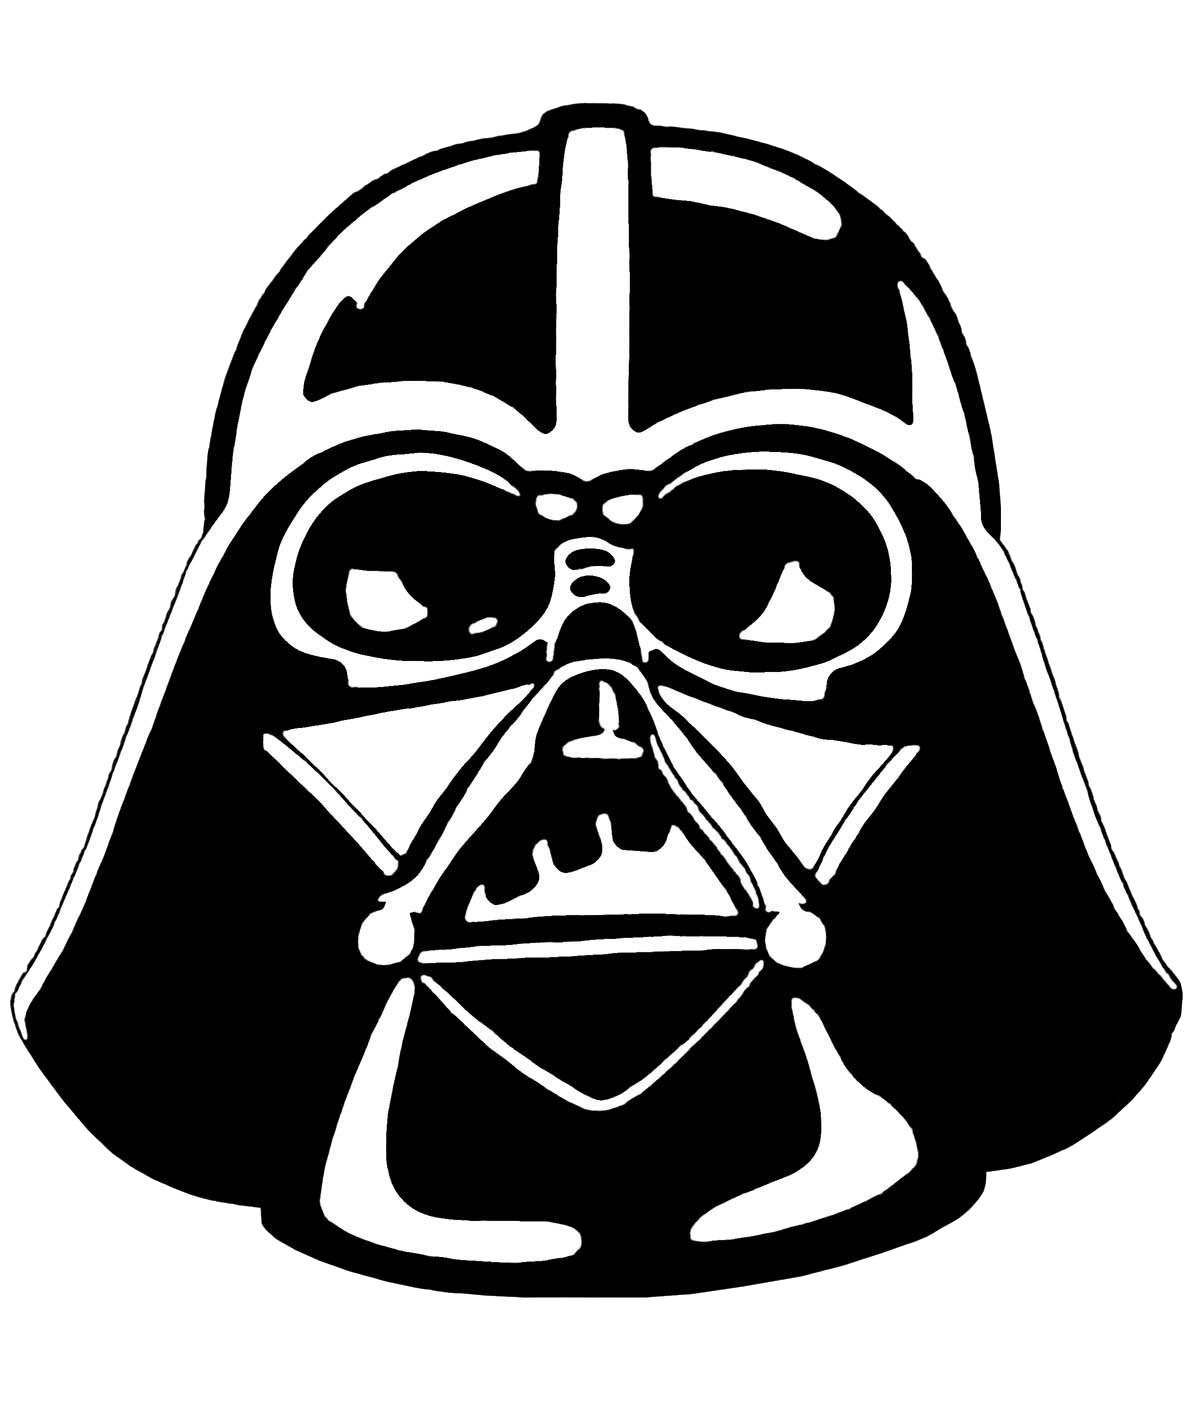 Star wars characters clipart black and white